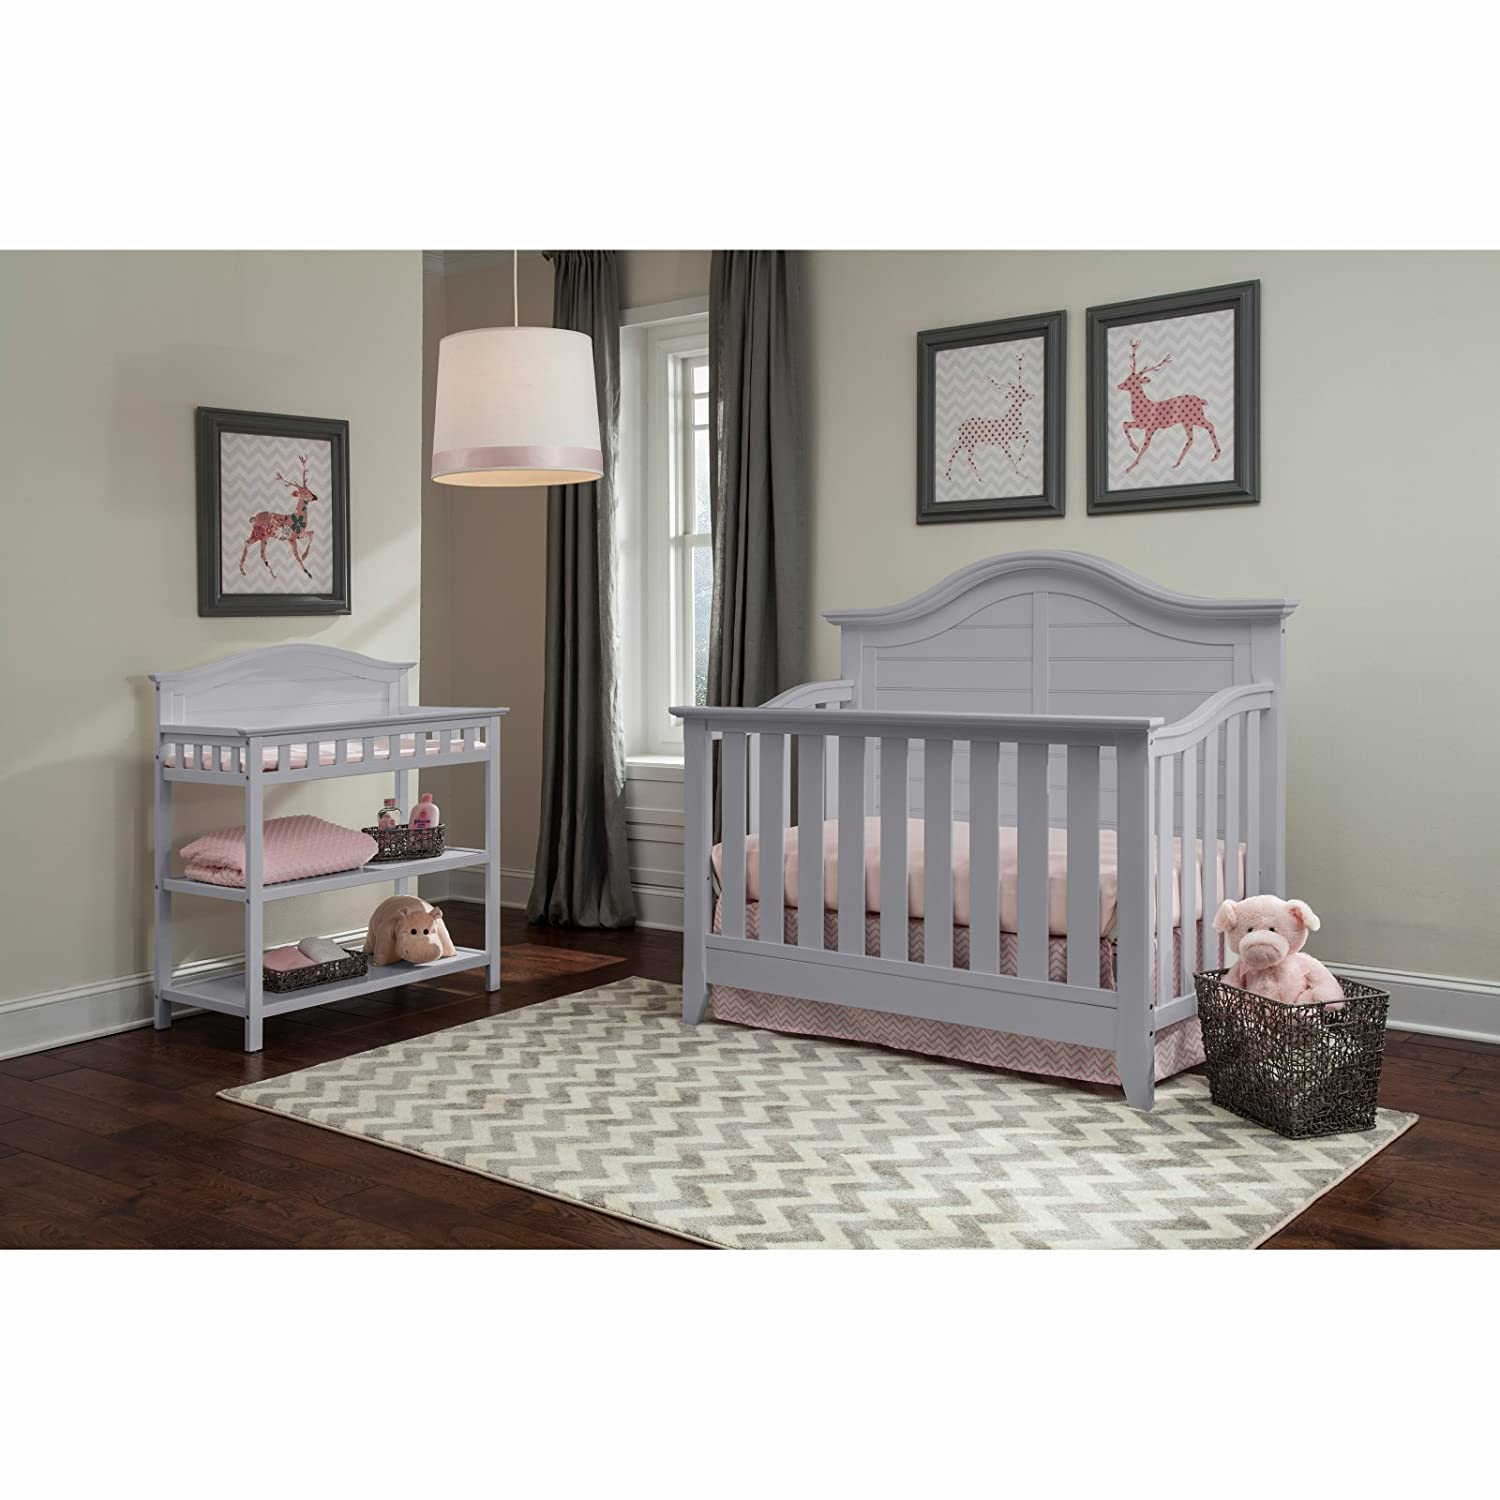 Beau Amazon.com : Thomasville Kids Southern Dunes Lifestyle 4 In 1 Convertible  Crib, Pebble Gray, Easily Converts To Toddler Bed Day Bed Or Full Bed, ...